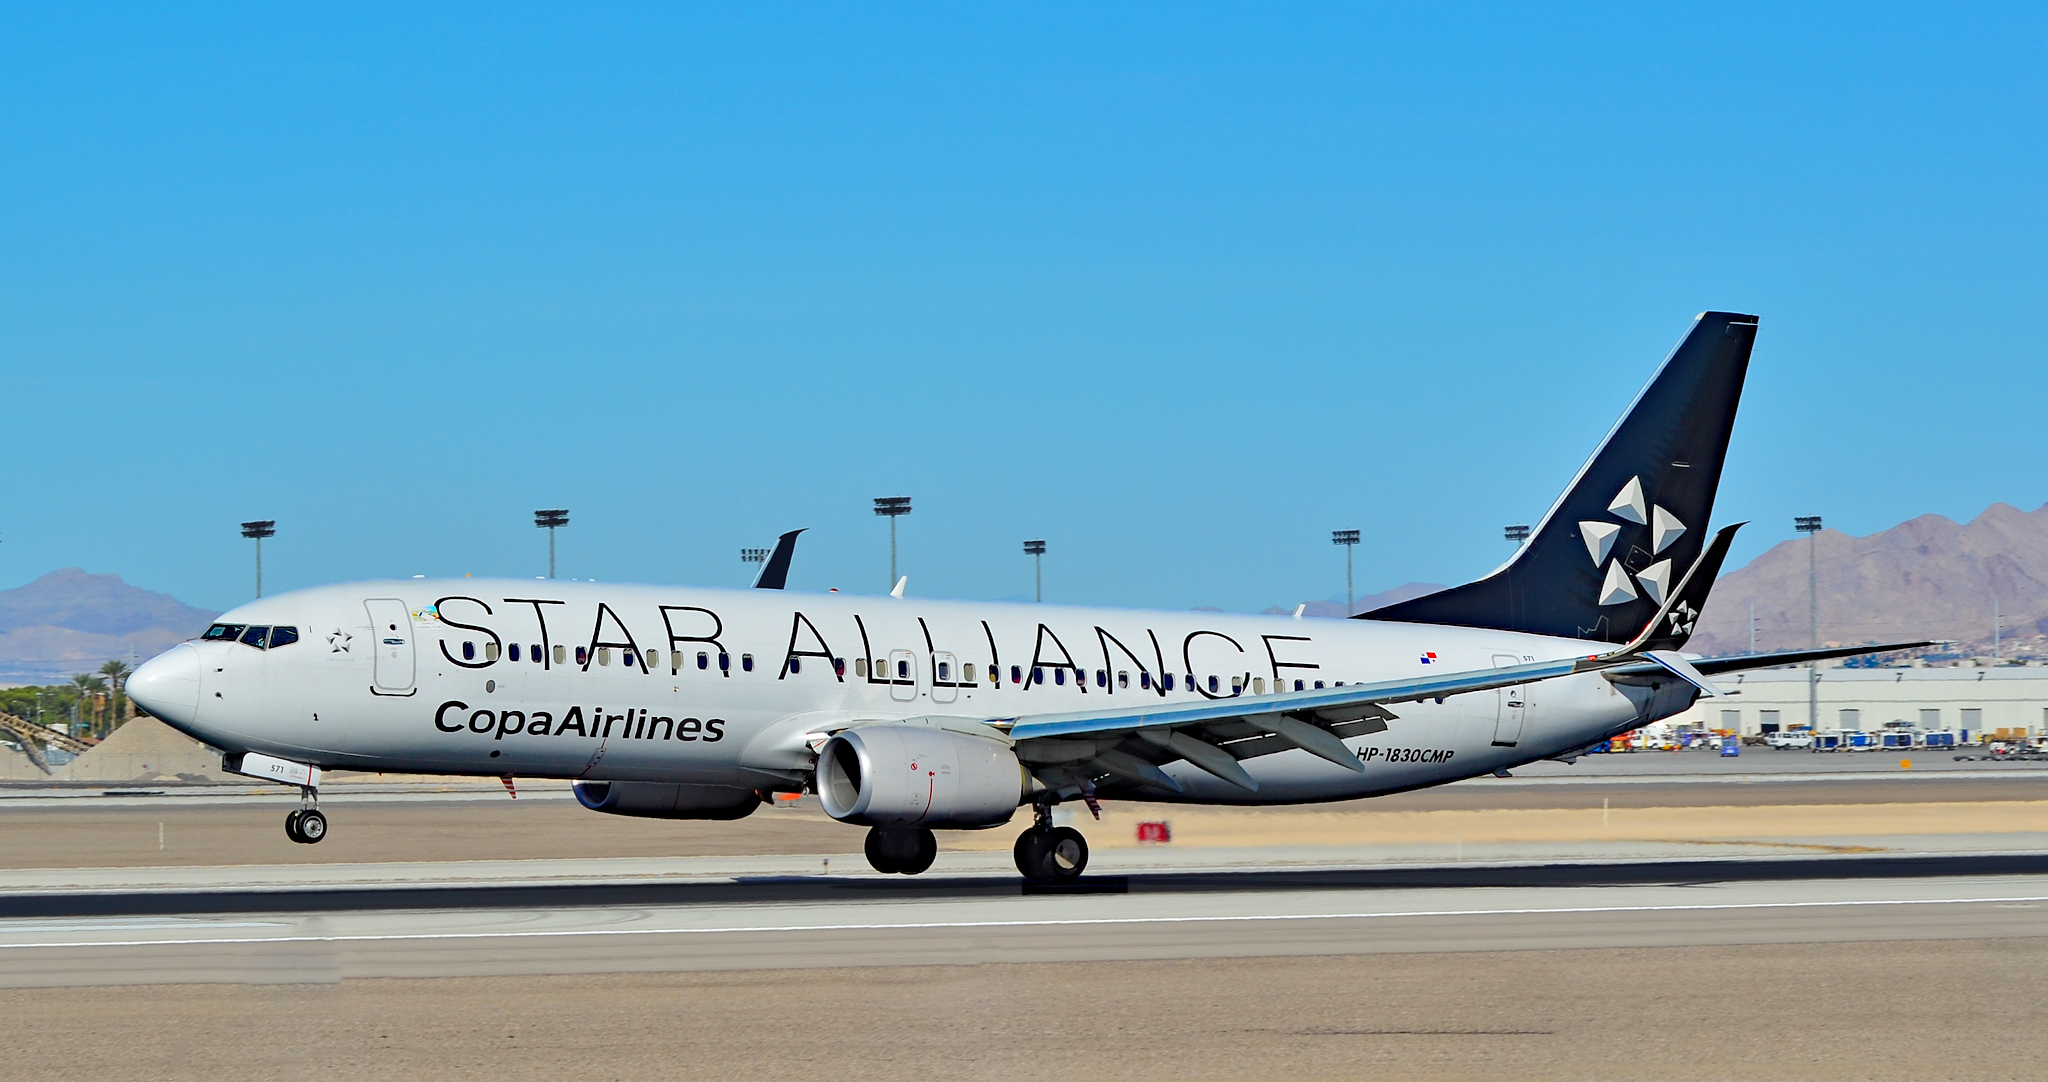 file hp 1830cmp copa airlines 2013 boeing 737 8v3 cn 40781 4396 rh commons wikimedia org